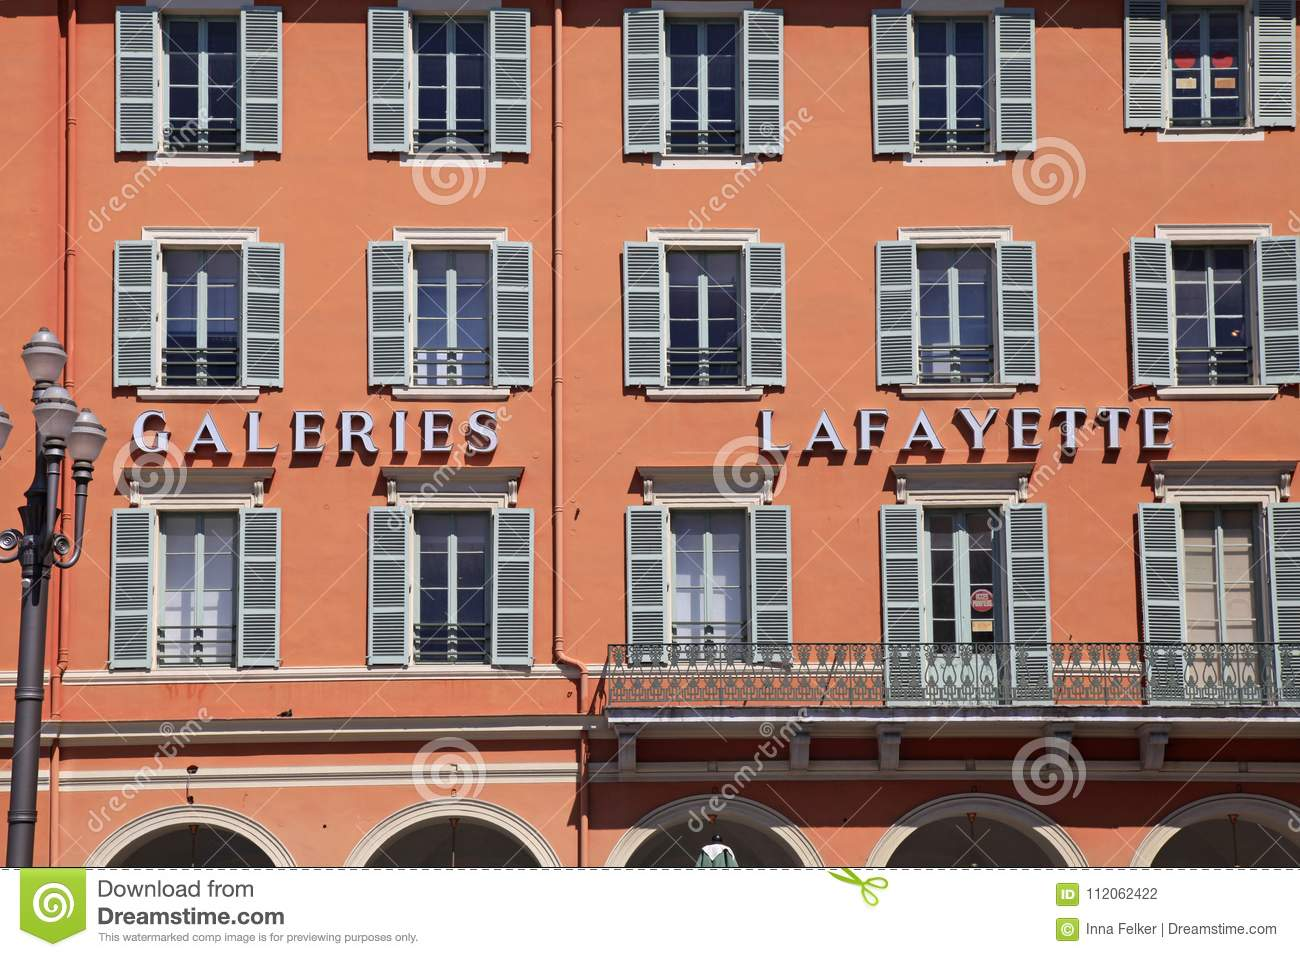 Detail of Gallery Lafayette on the Place Massena, Nice, France.